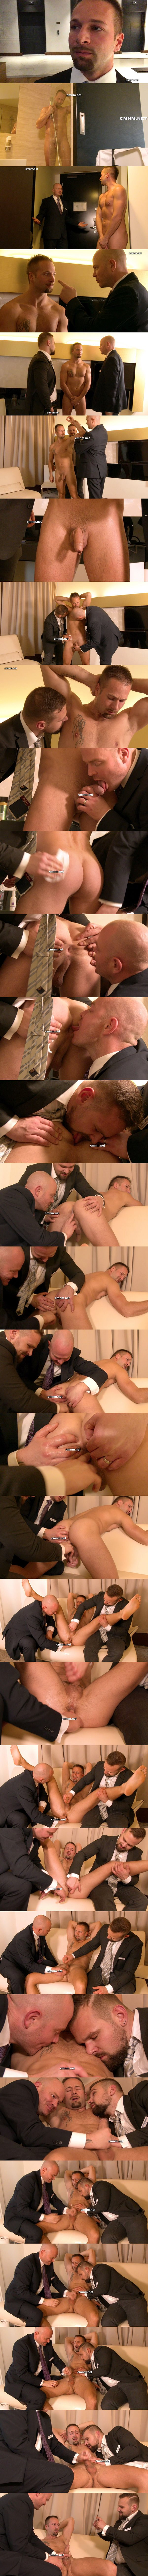 Handsome straight hunk Alan gets stripped down, fondled, humiliated, finger fucked and jerked off by pervy masters Dave and Patrick Barak in Alan's Demise at Cmnm 01